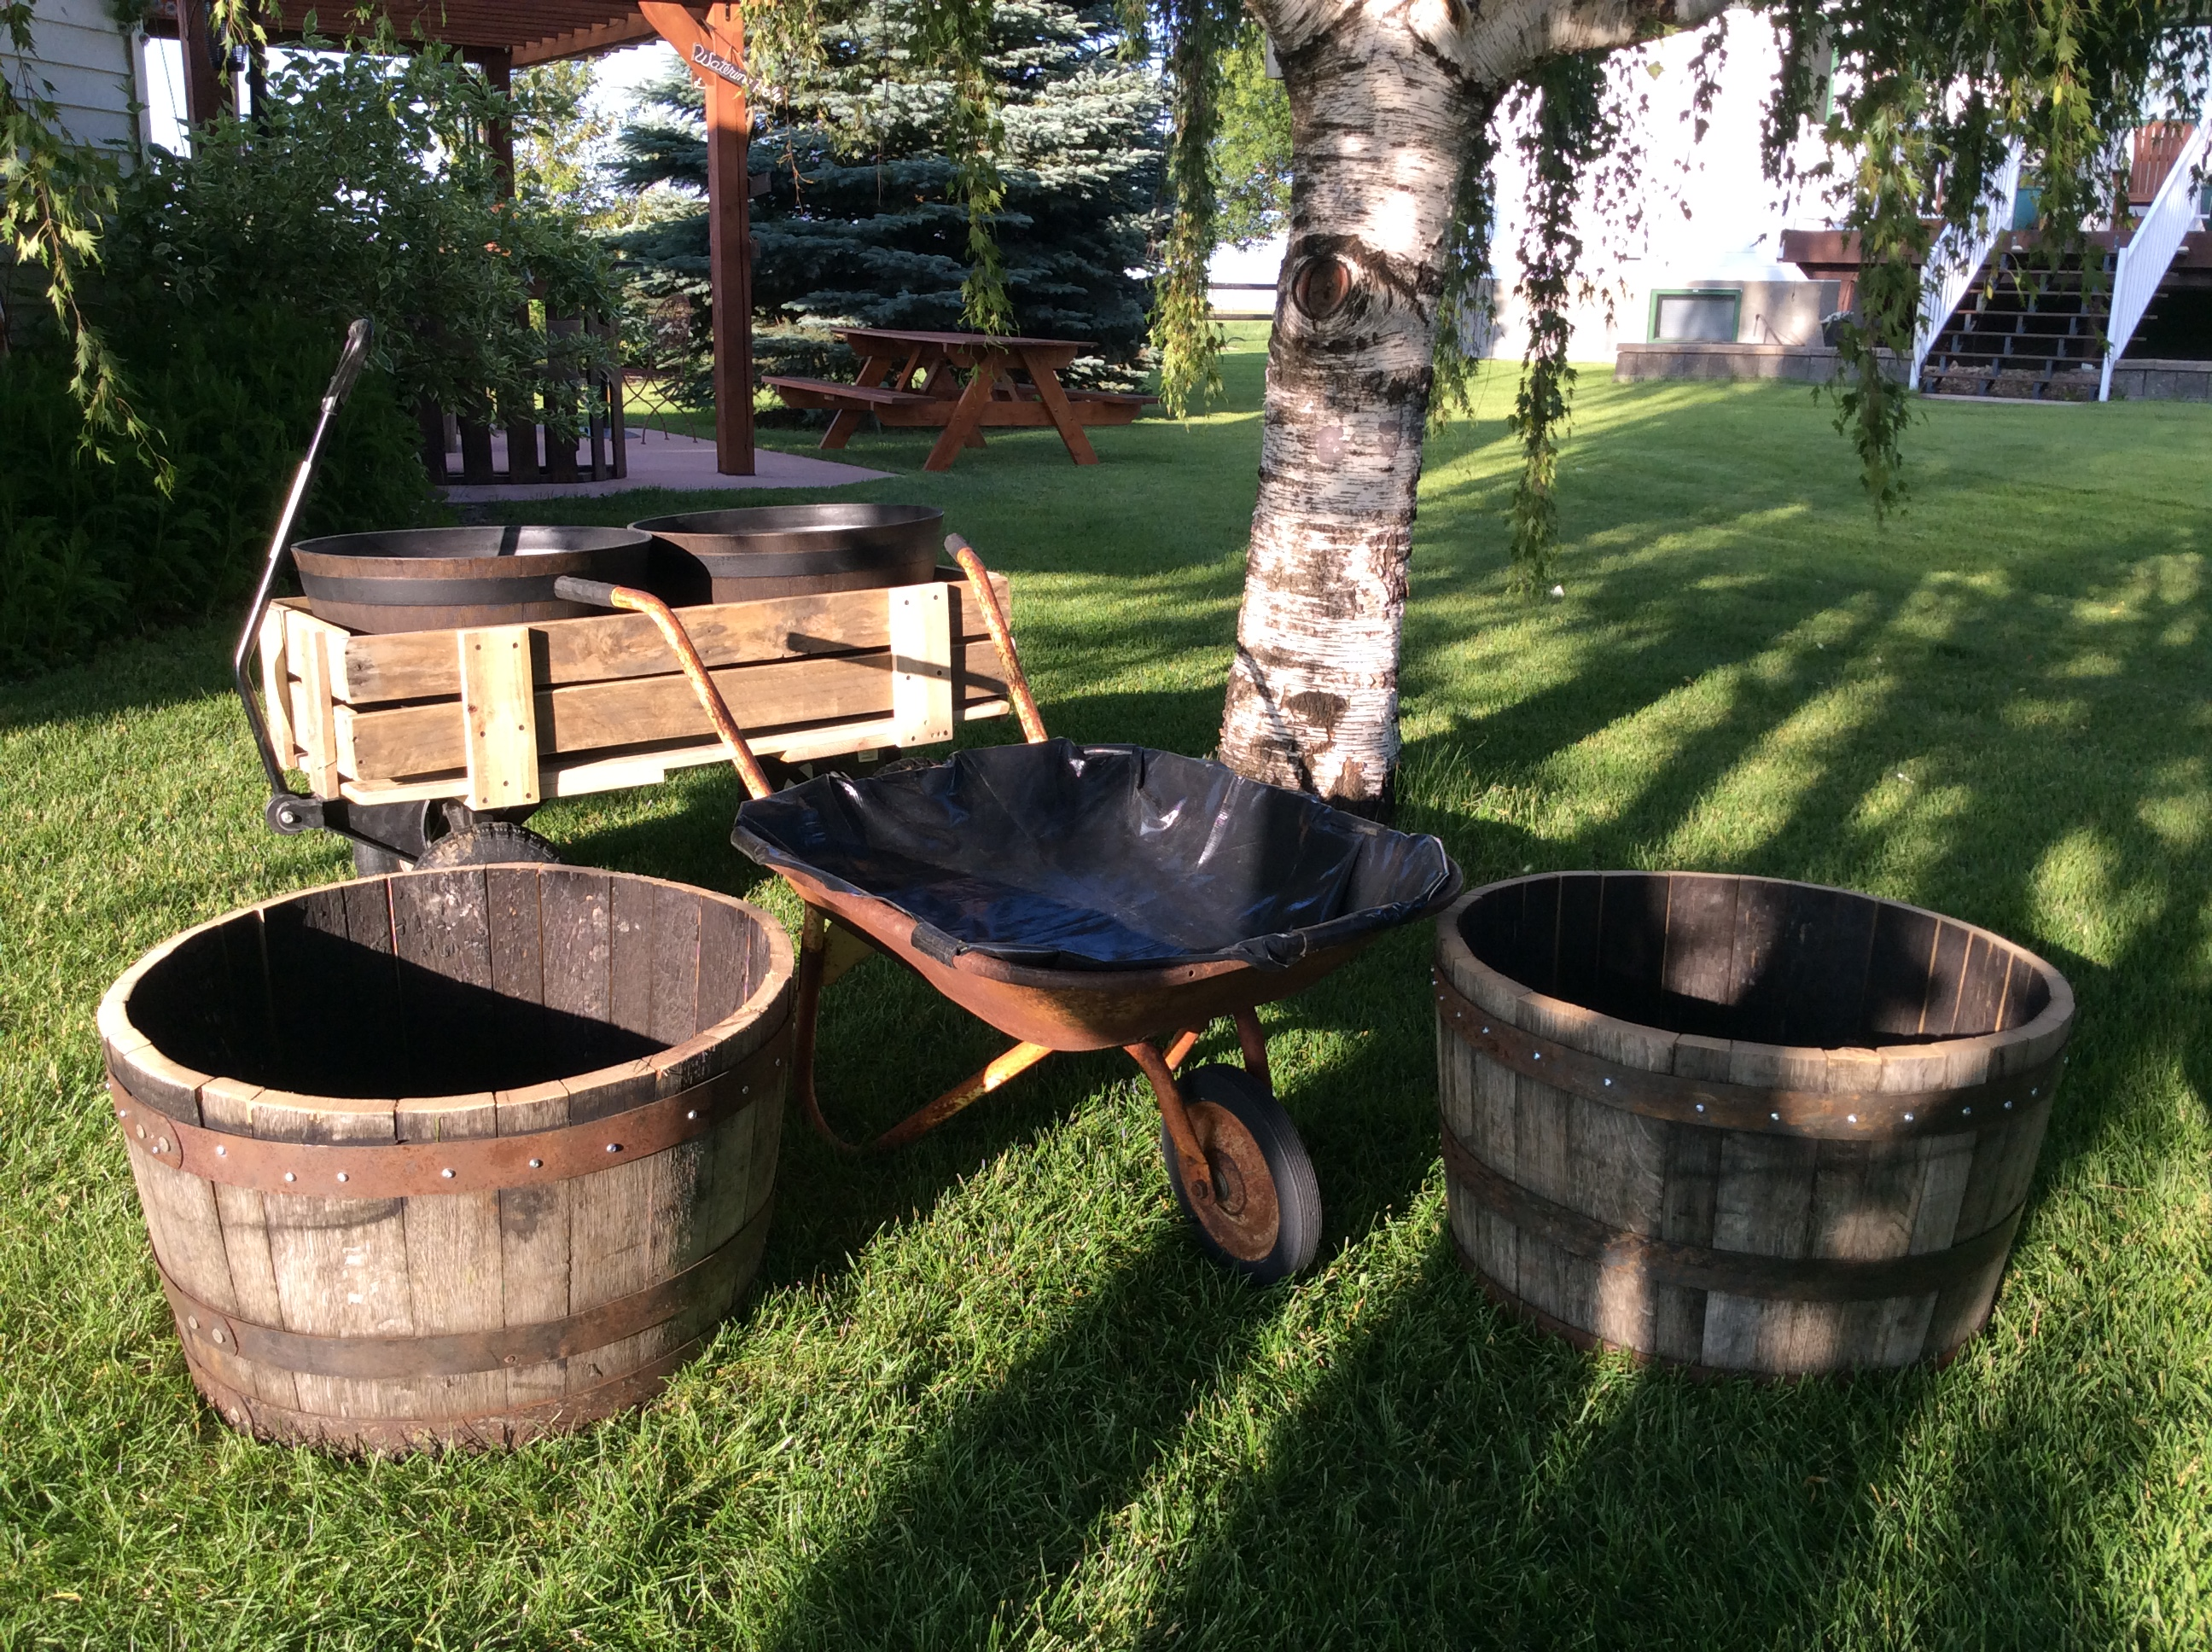 Drink containers barrels wagon wheelbarrel